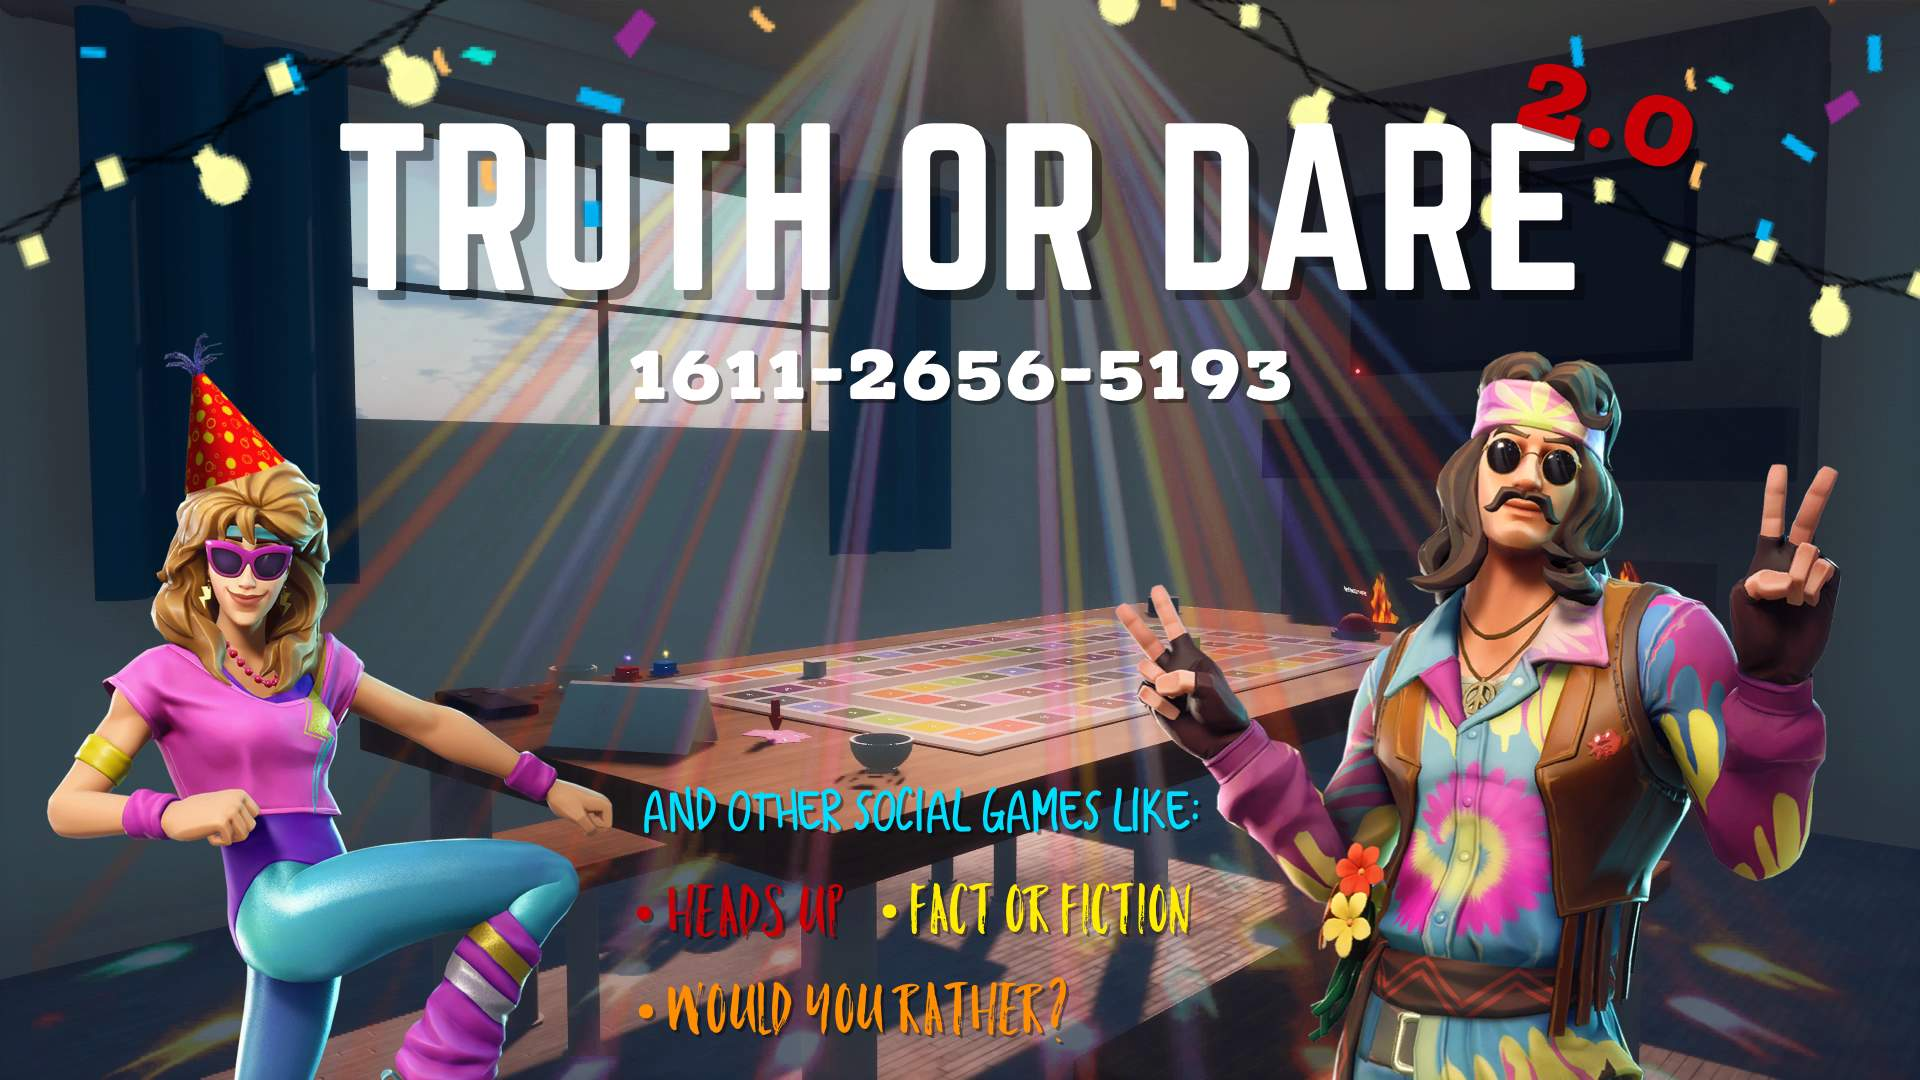 TRUTH OR DARE 2.0